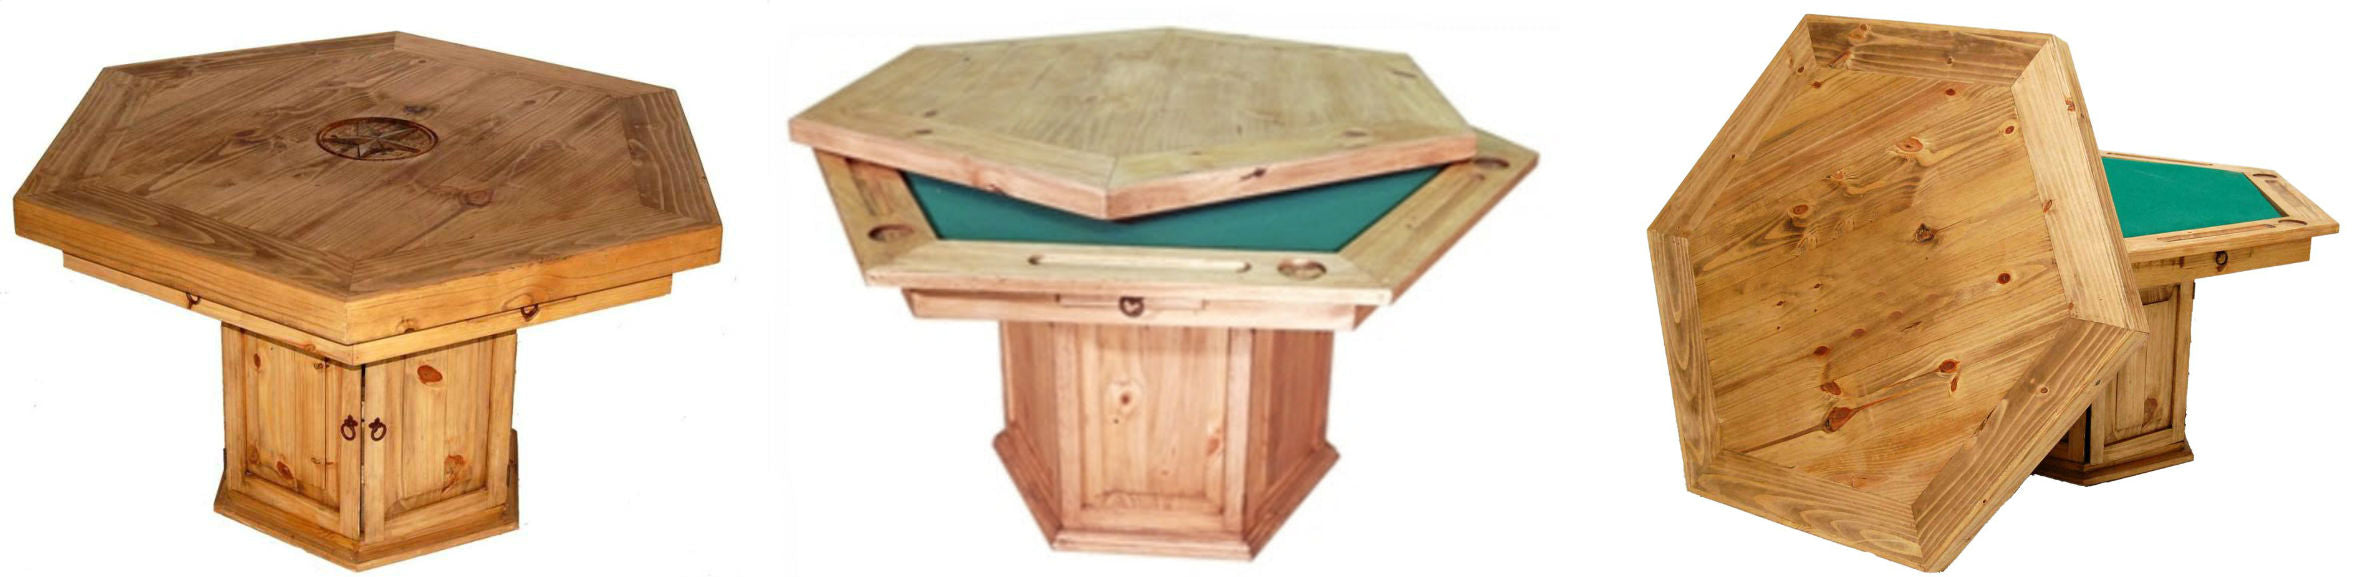 Convertible Poker Table by Million Dollar Rustic